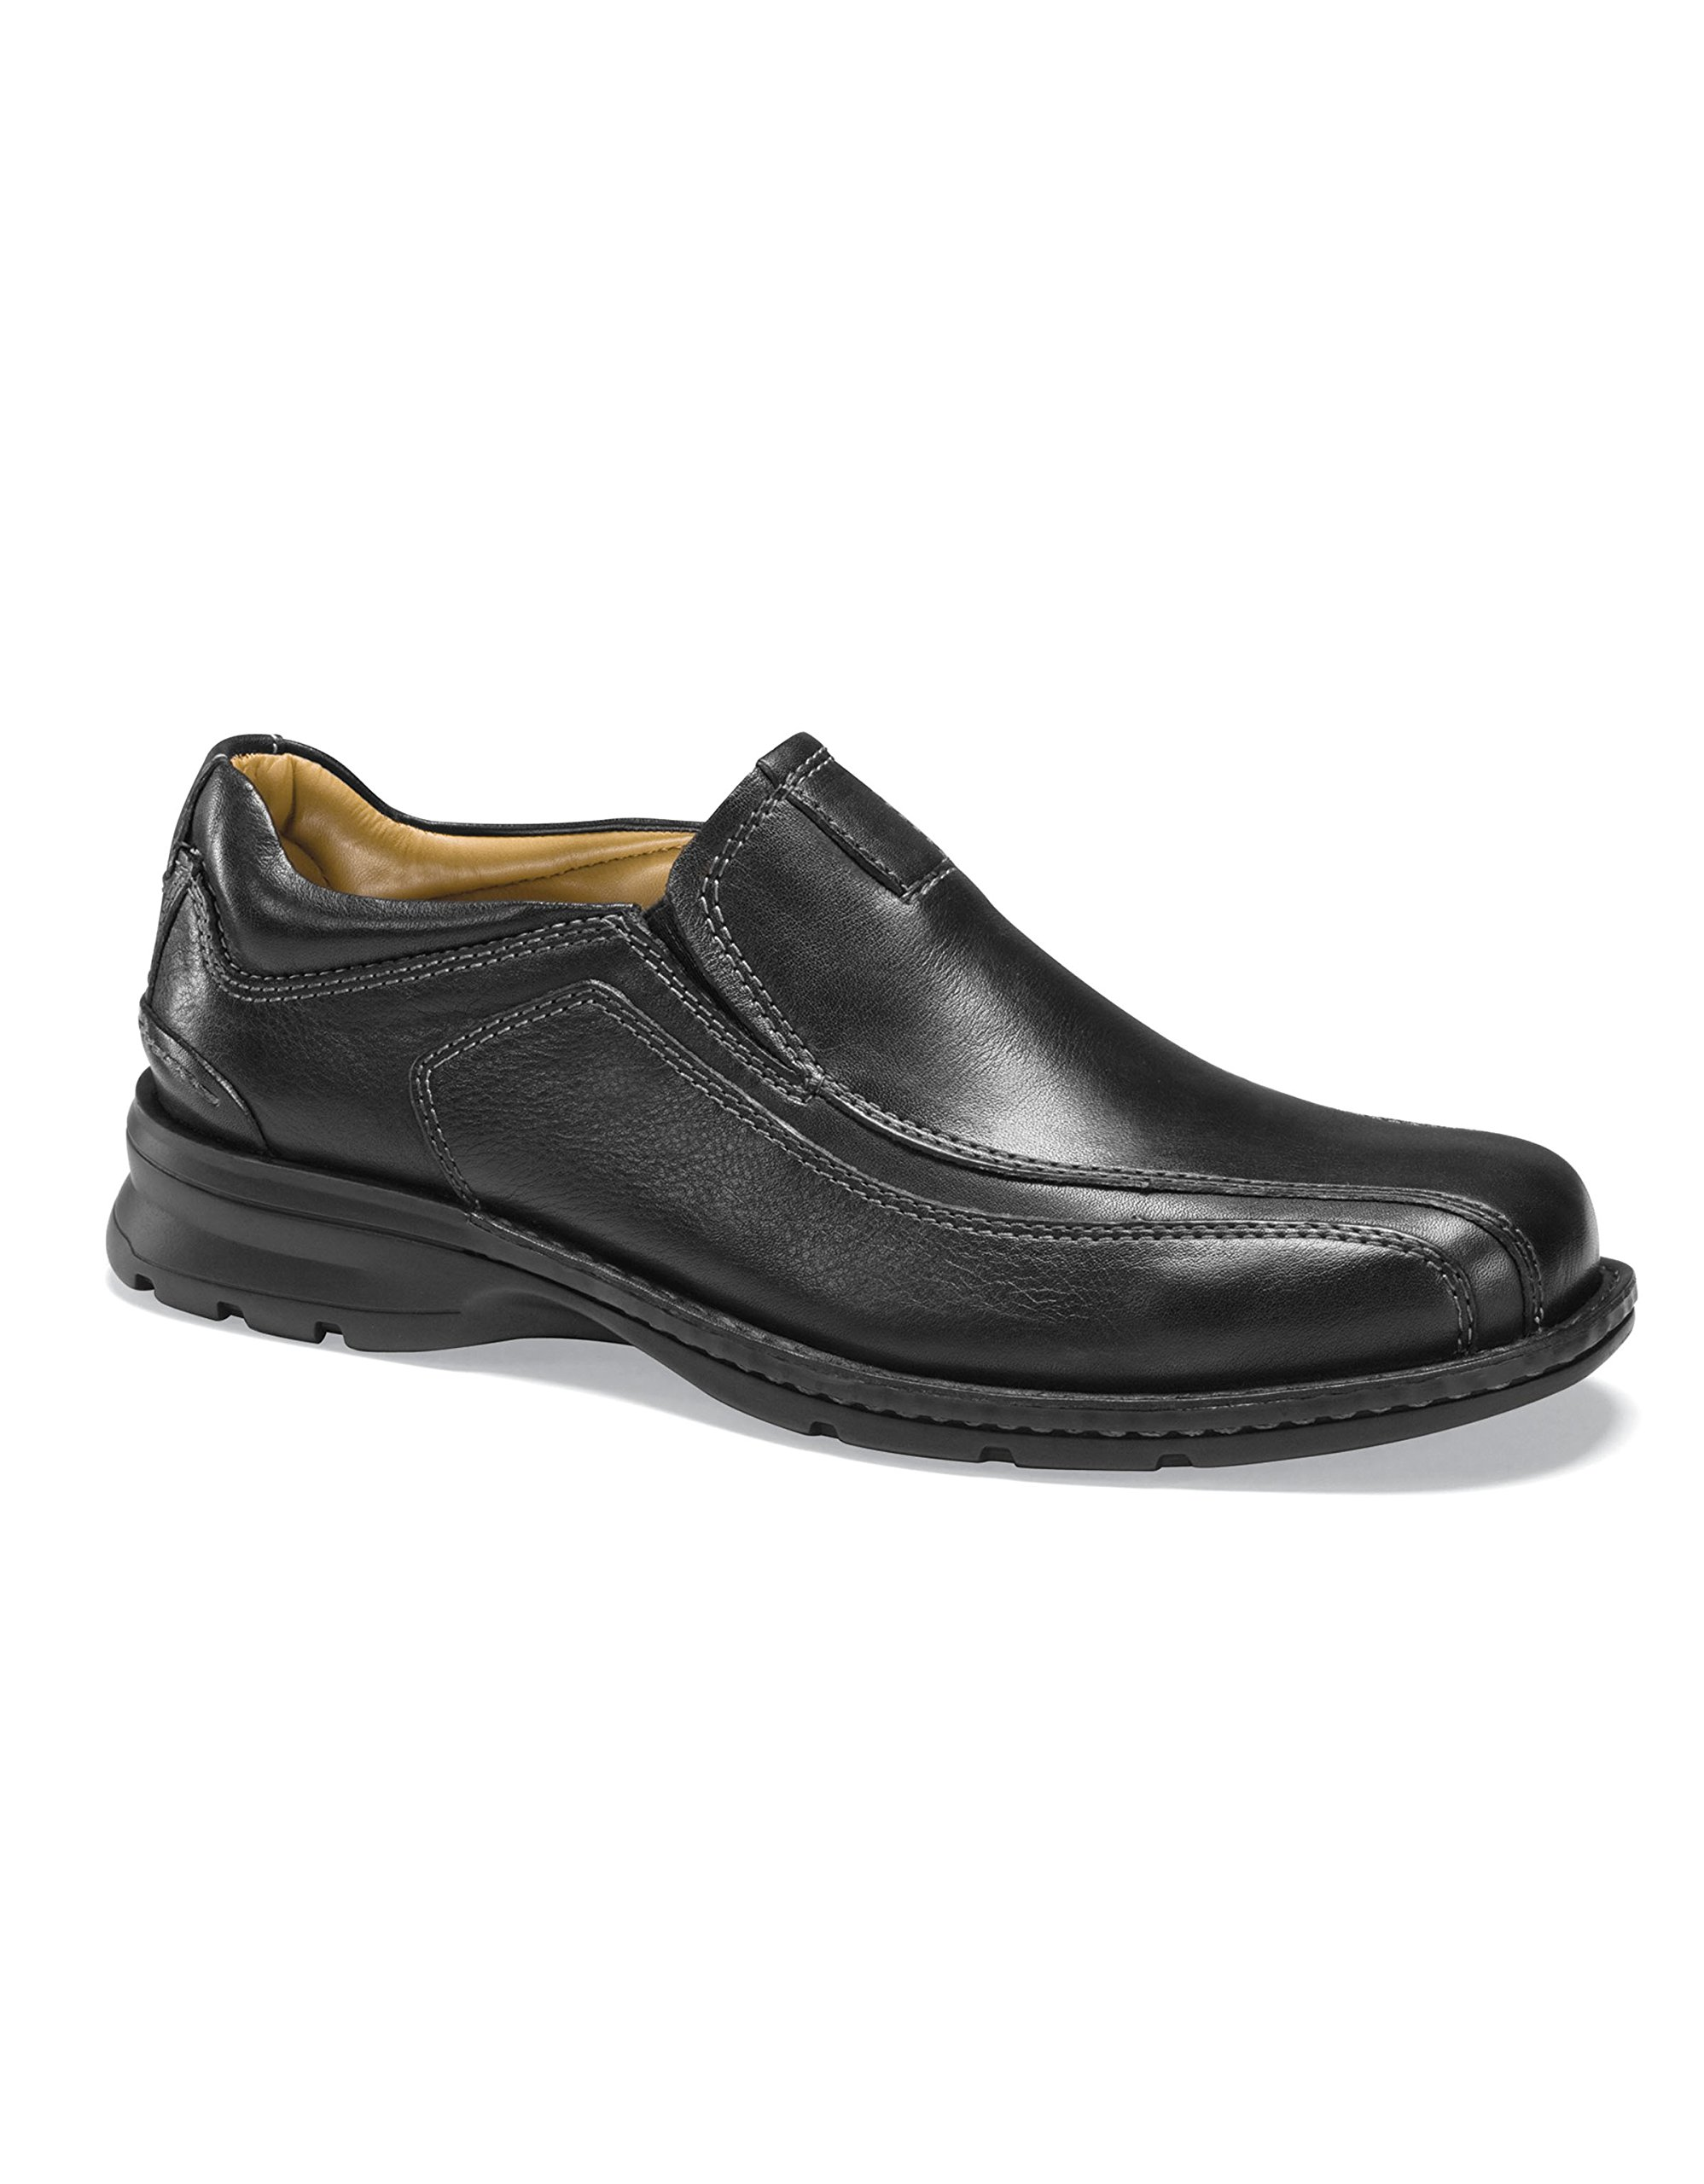 Dockers Men's Agent Slip-On Loafer Black Tumbled 14 W by Dockers